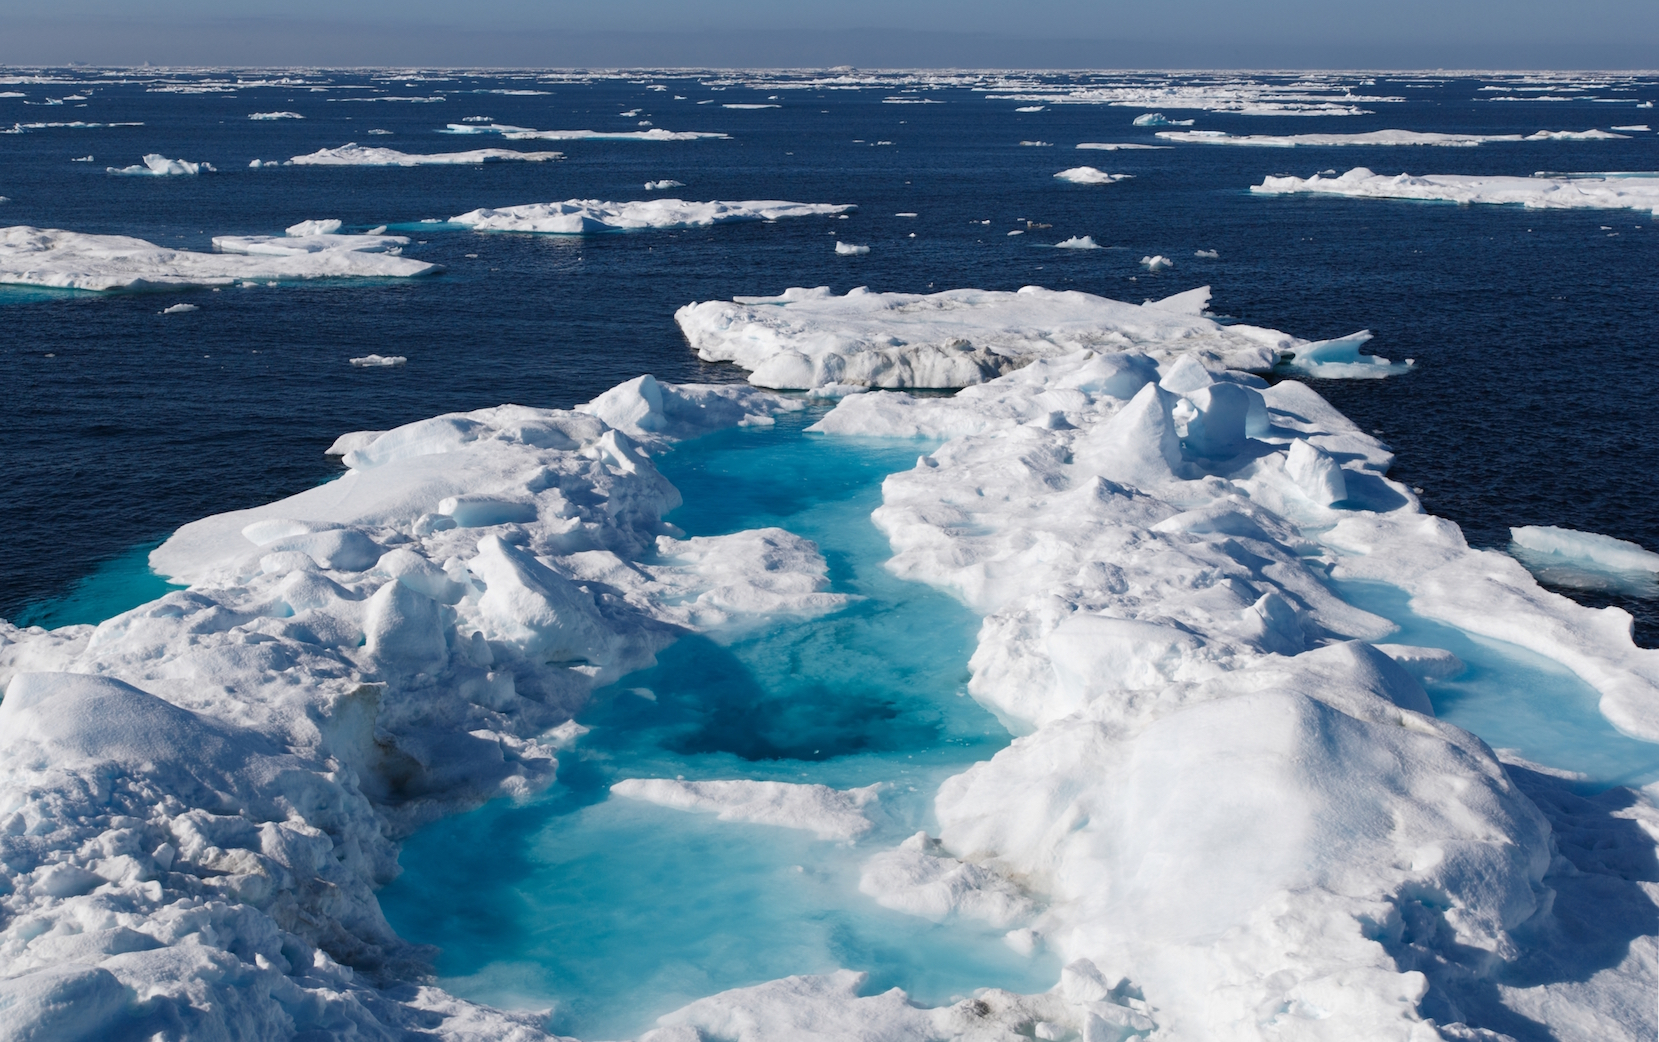 According to a new study, the final scrap of the ice sheet that used to cover North America will be gone in the next 300 years.